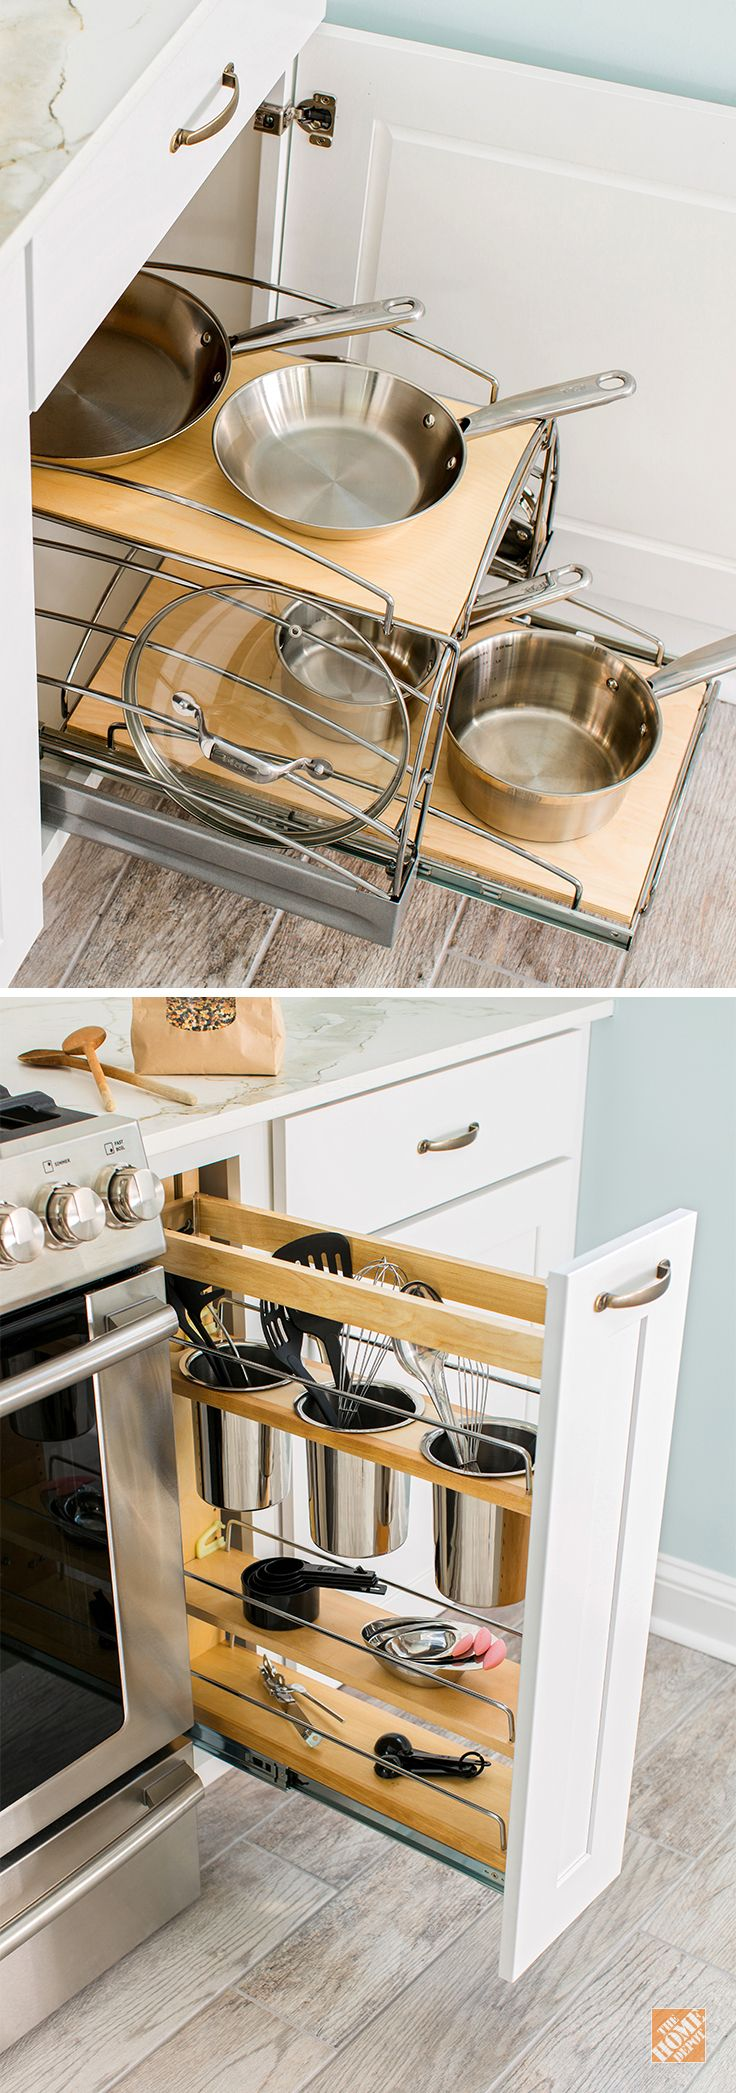 From The Home Depot Check Out These Terrific Kitchen Storage Solutions E Savers For Pots And Pans